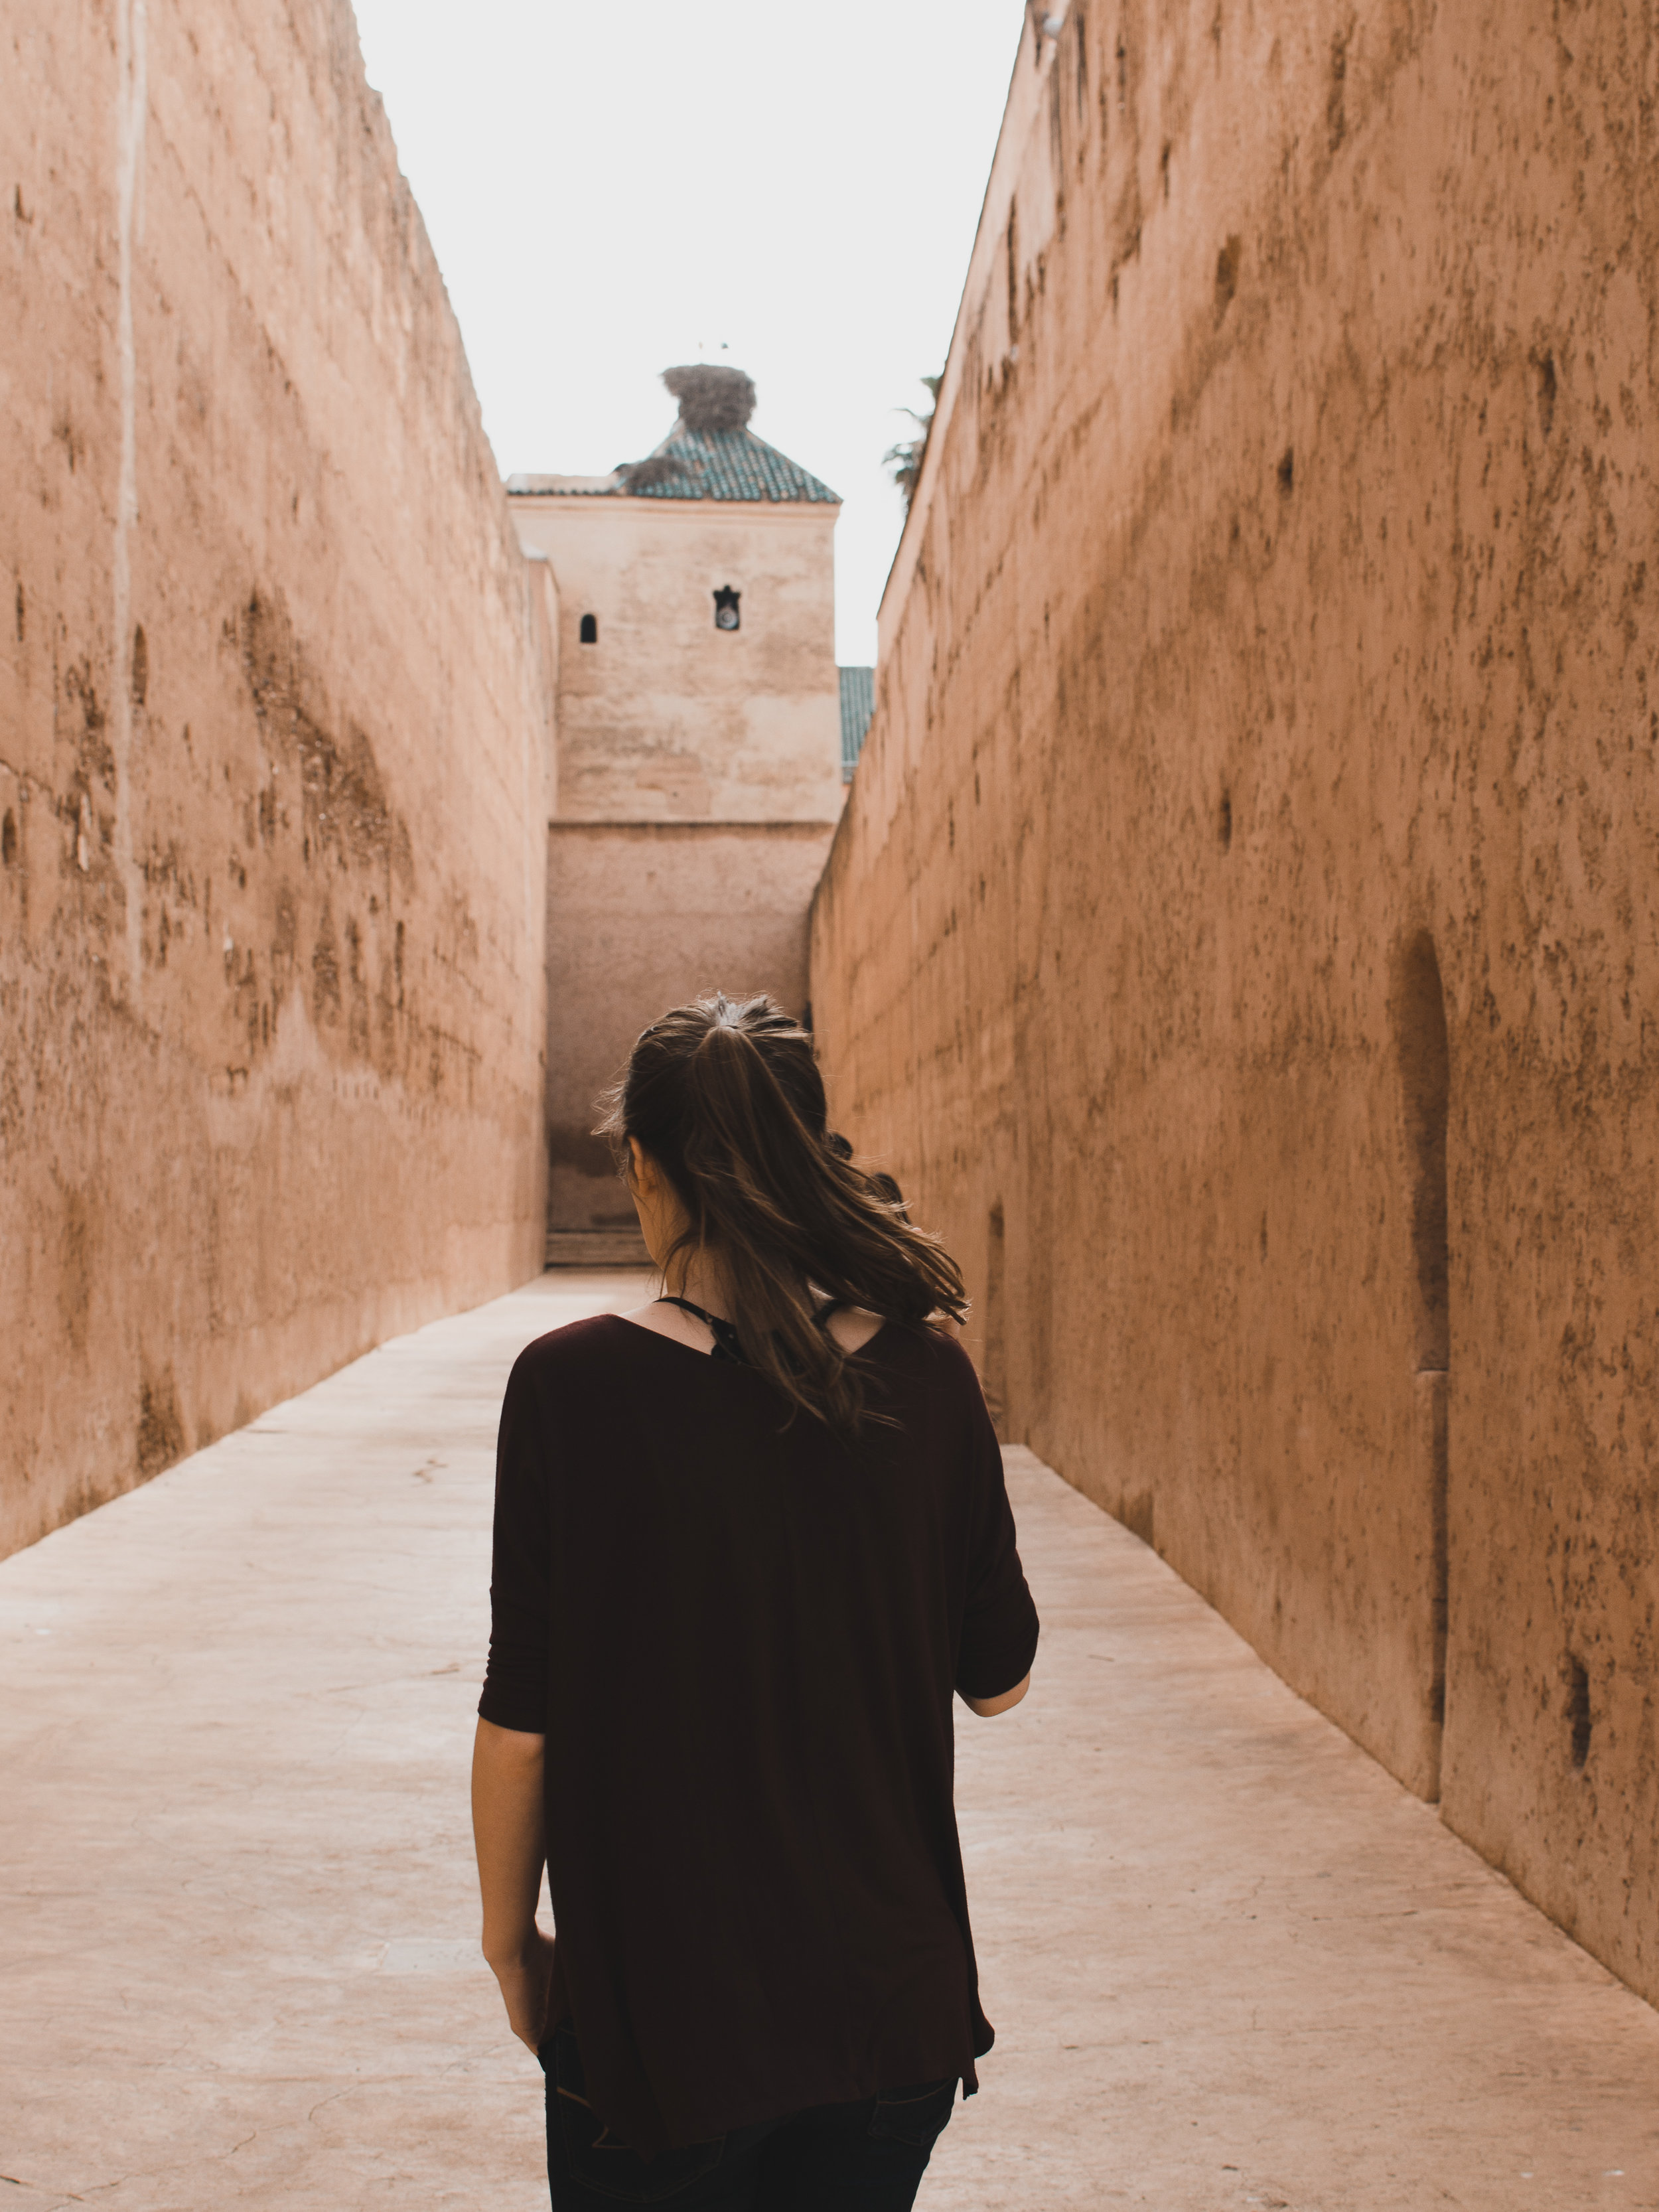 If you're looking for ideas on things to do in Marrakech, Badi Palace is a great place to start at